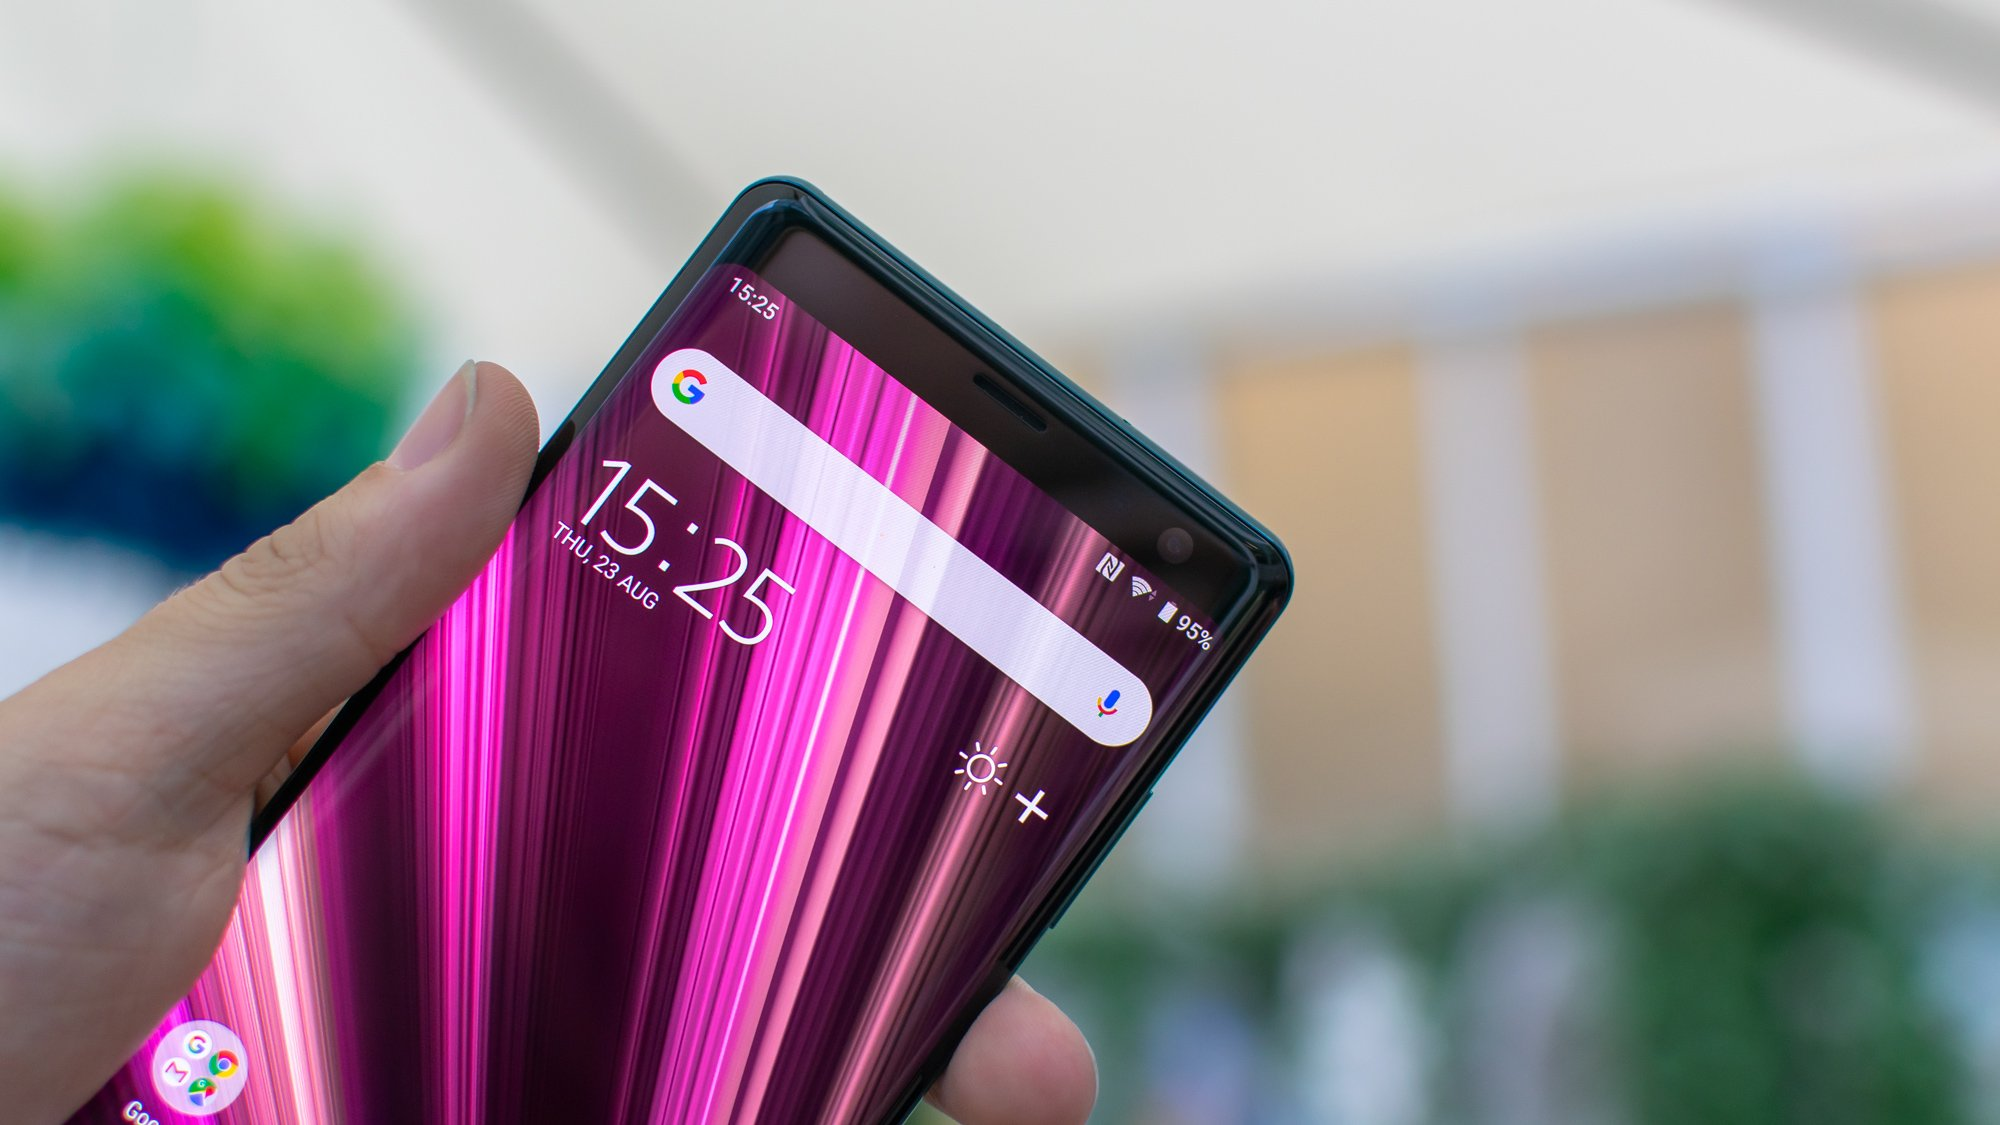 Sony unveils the Xperia XZ3 with a Bravia OLED display